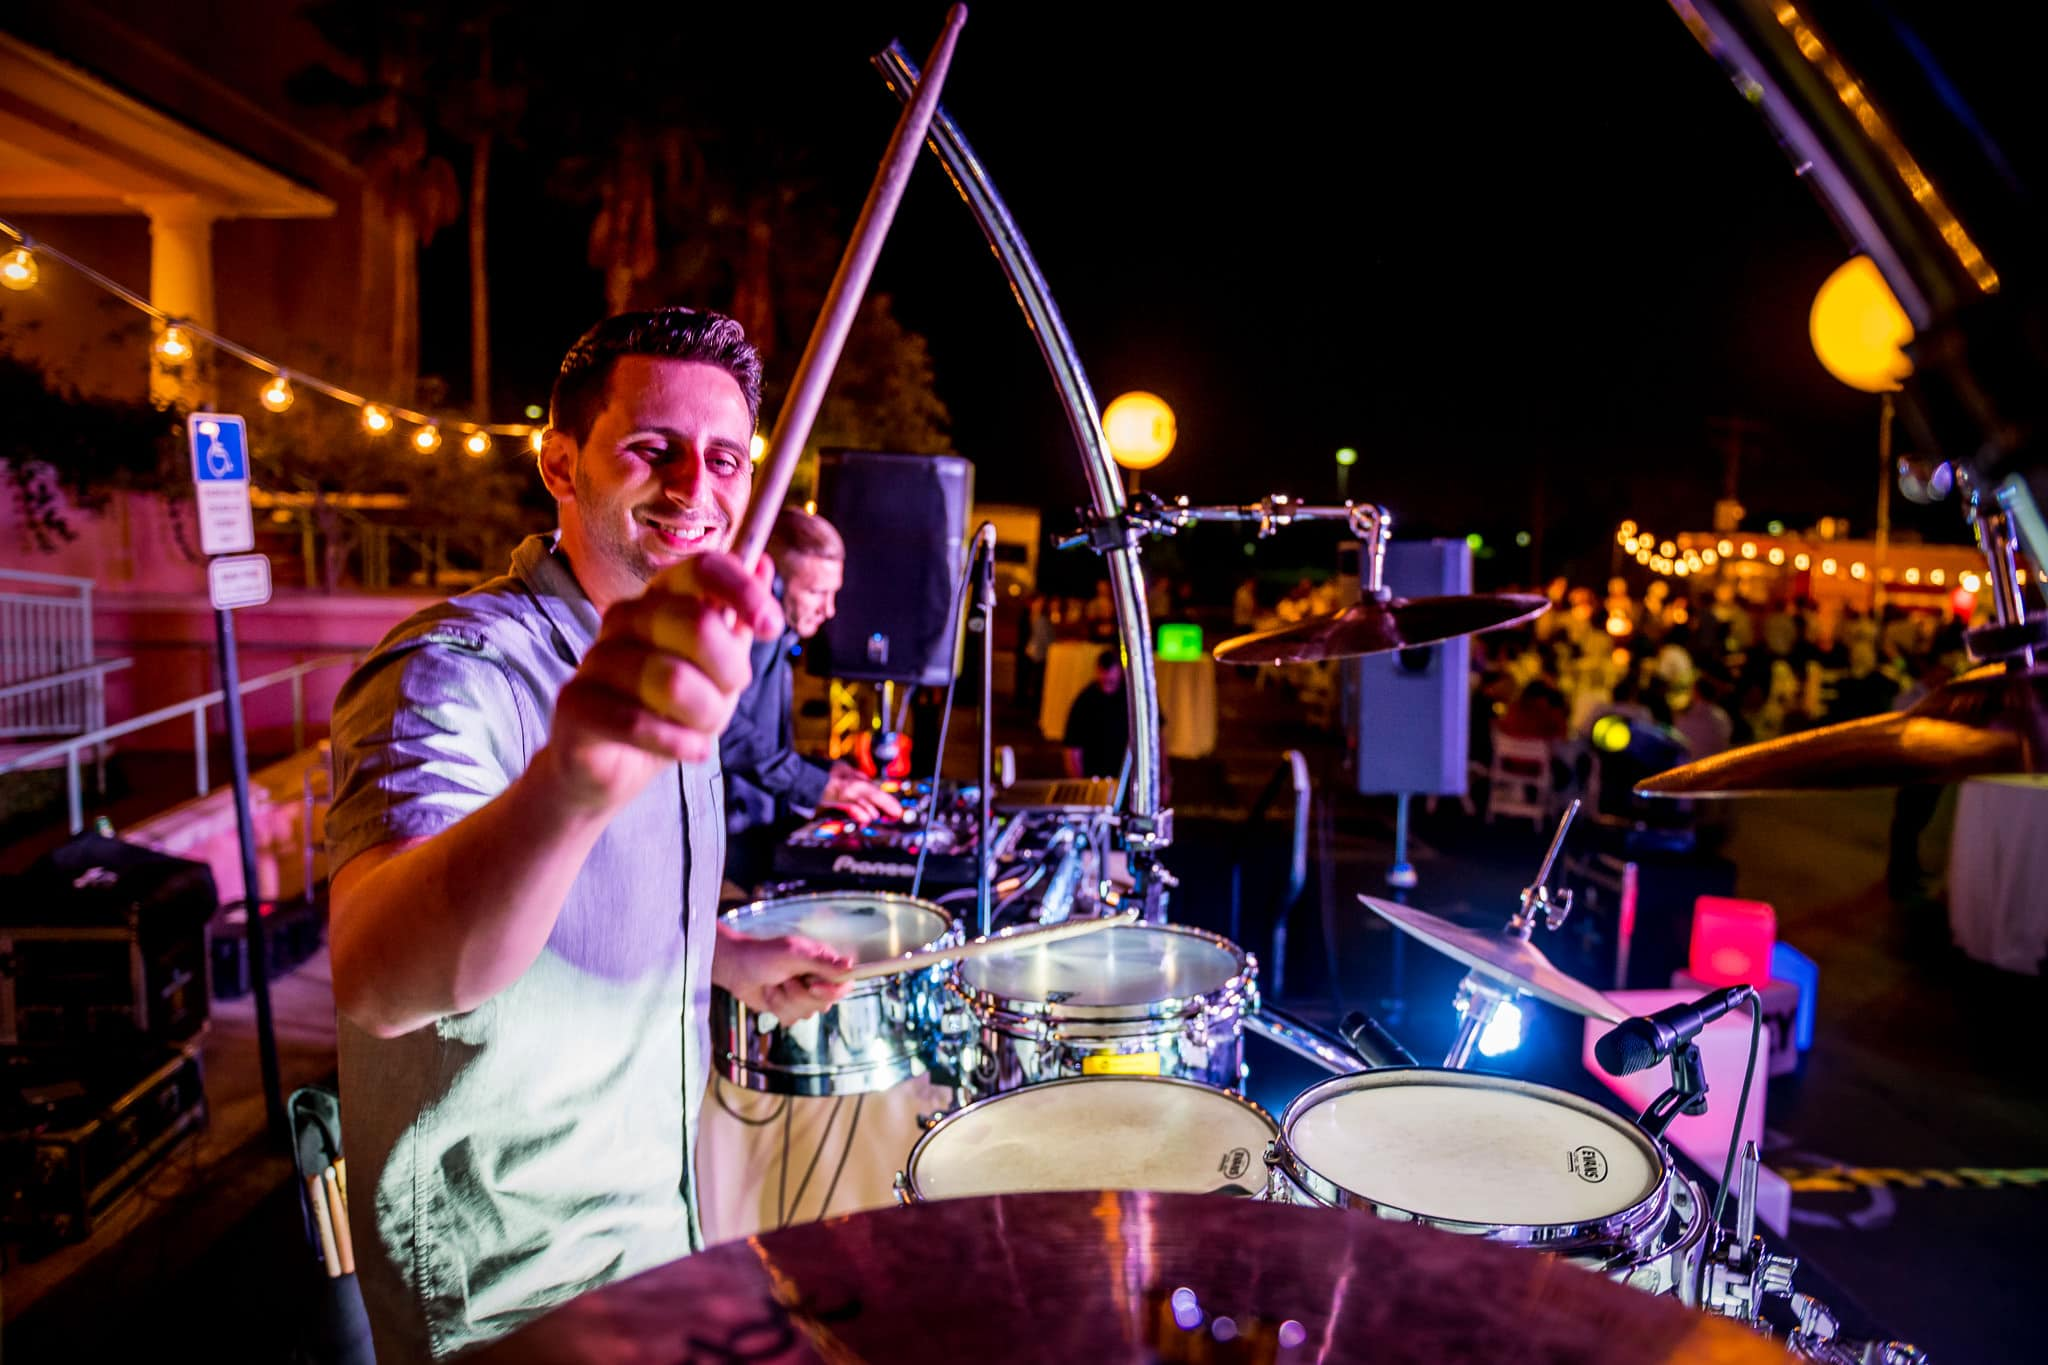 Close up of a drummer in action at the Food Truck party during an annual EY corporate event